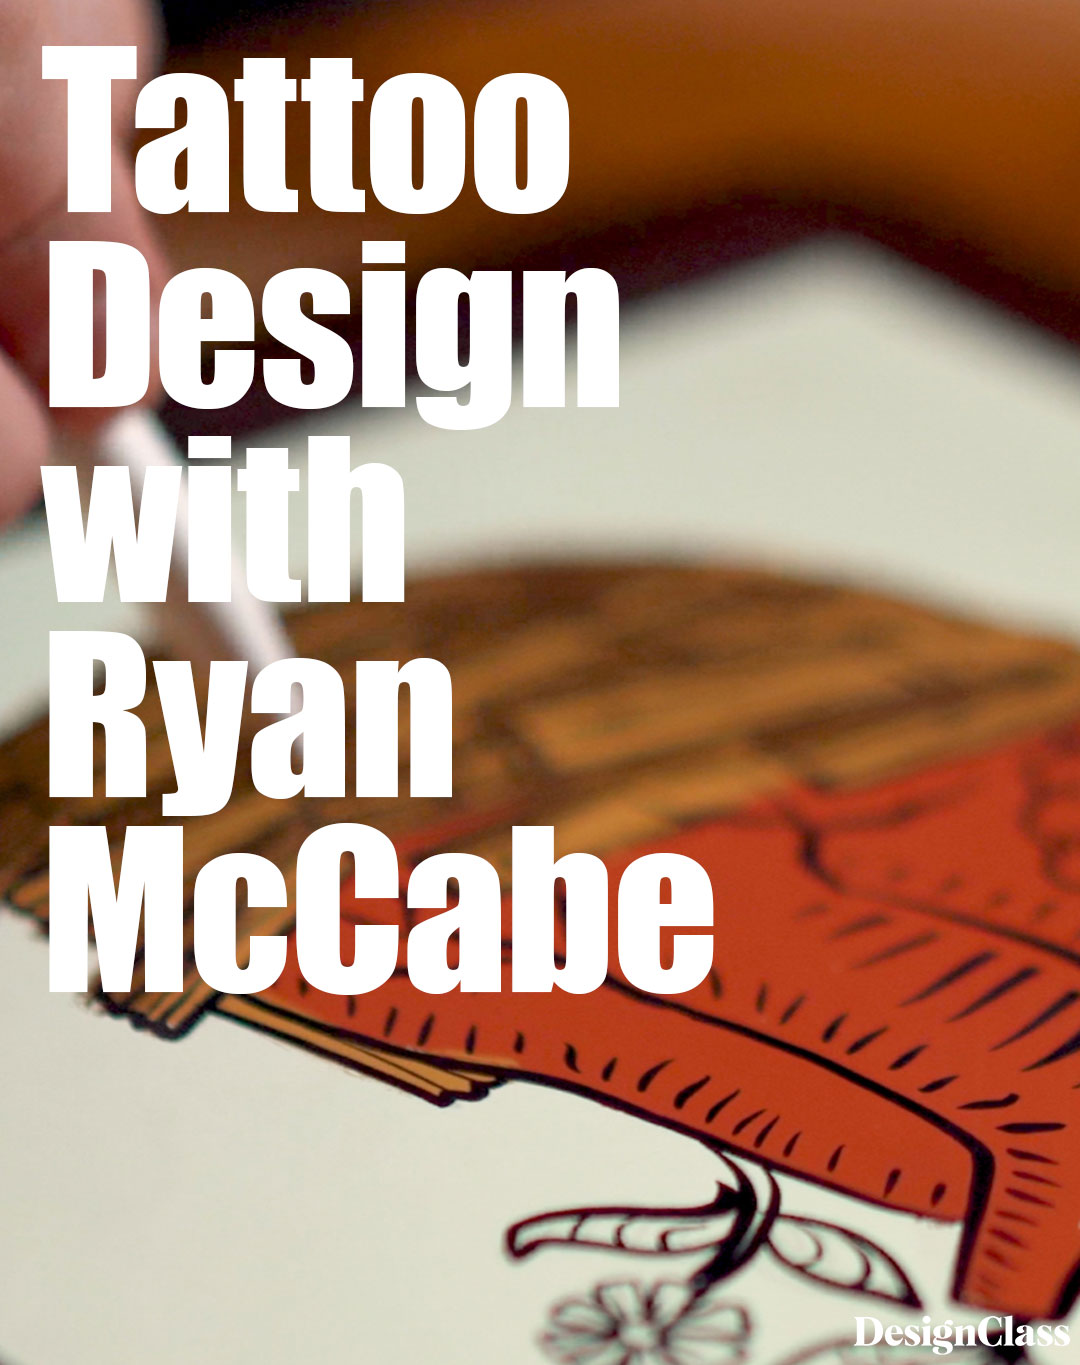 Tattoo Design with Ryan McCabe